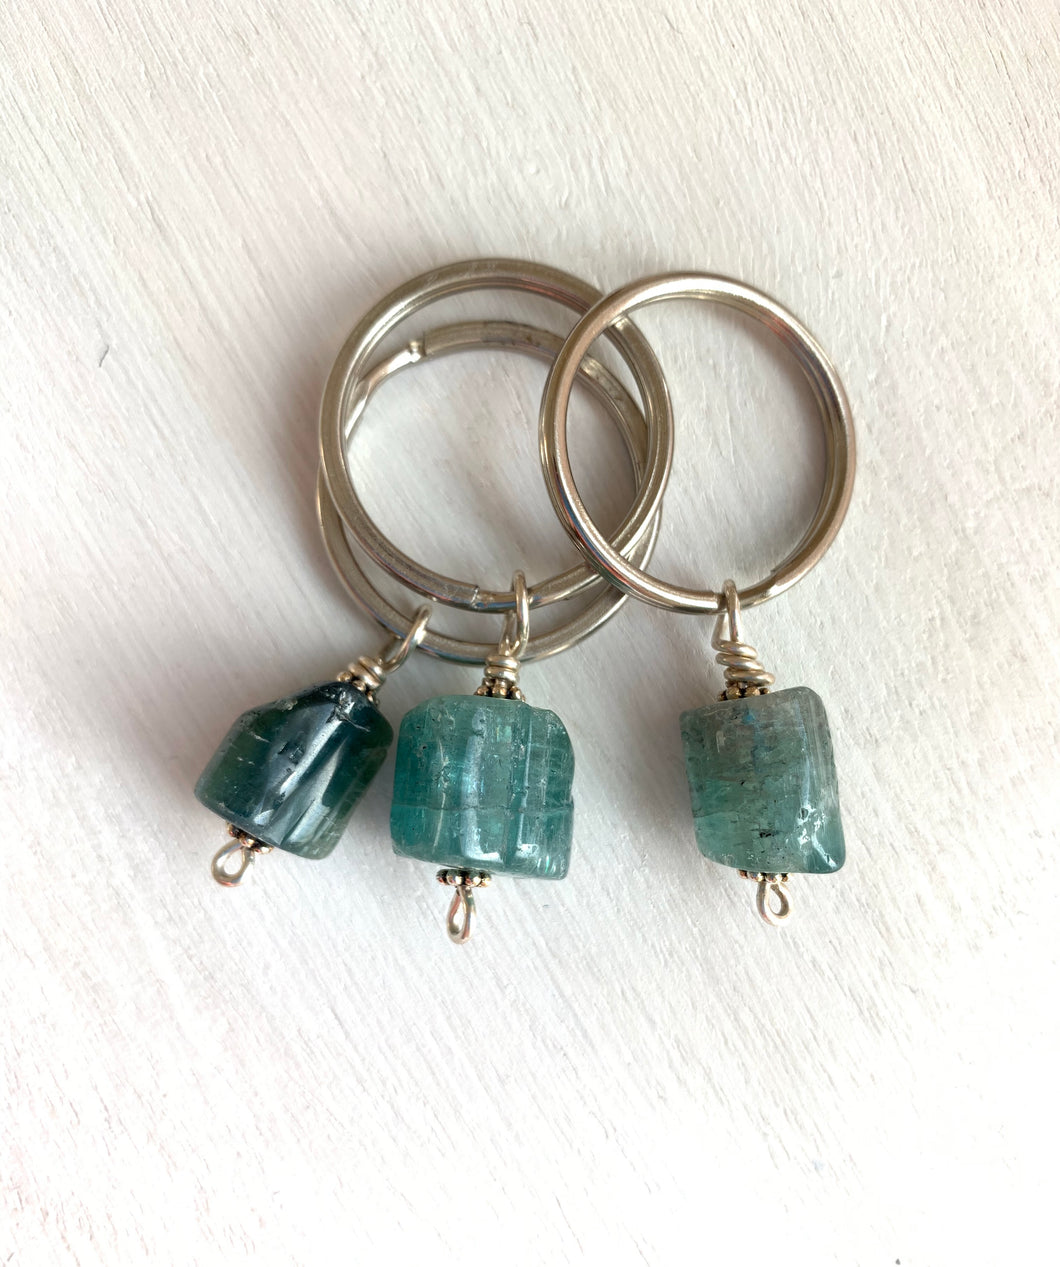 Maine tourmaline keychains - Lively Accents